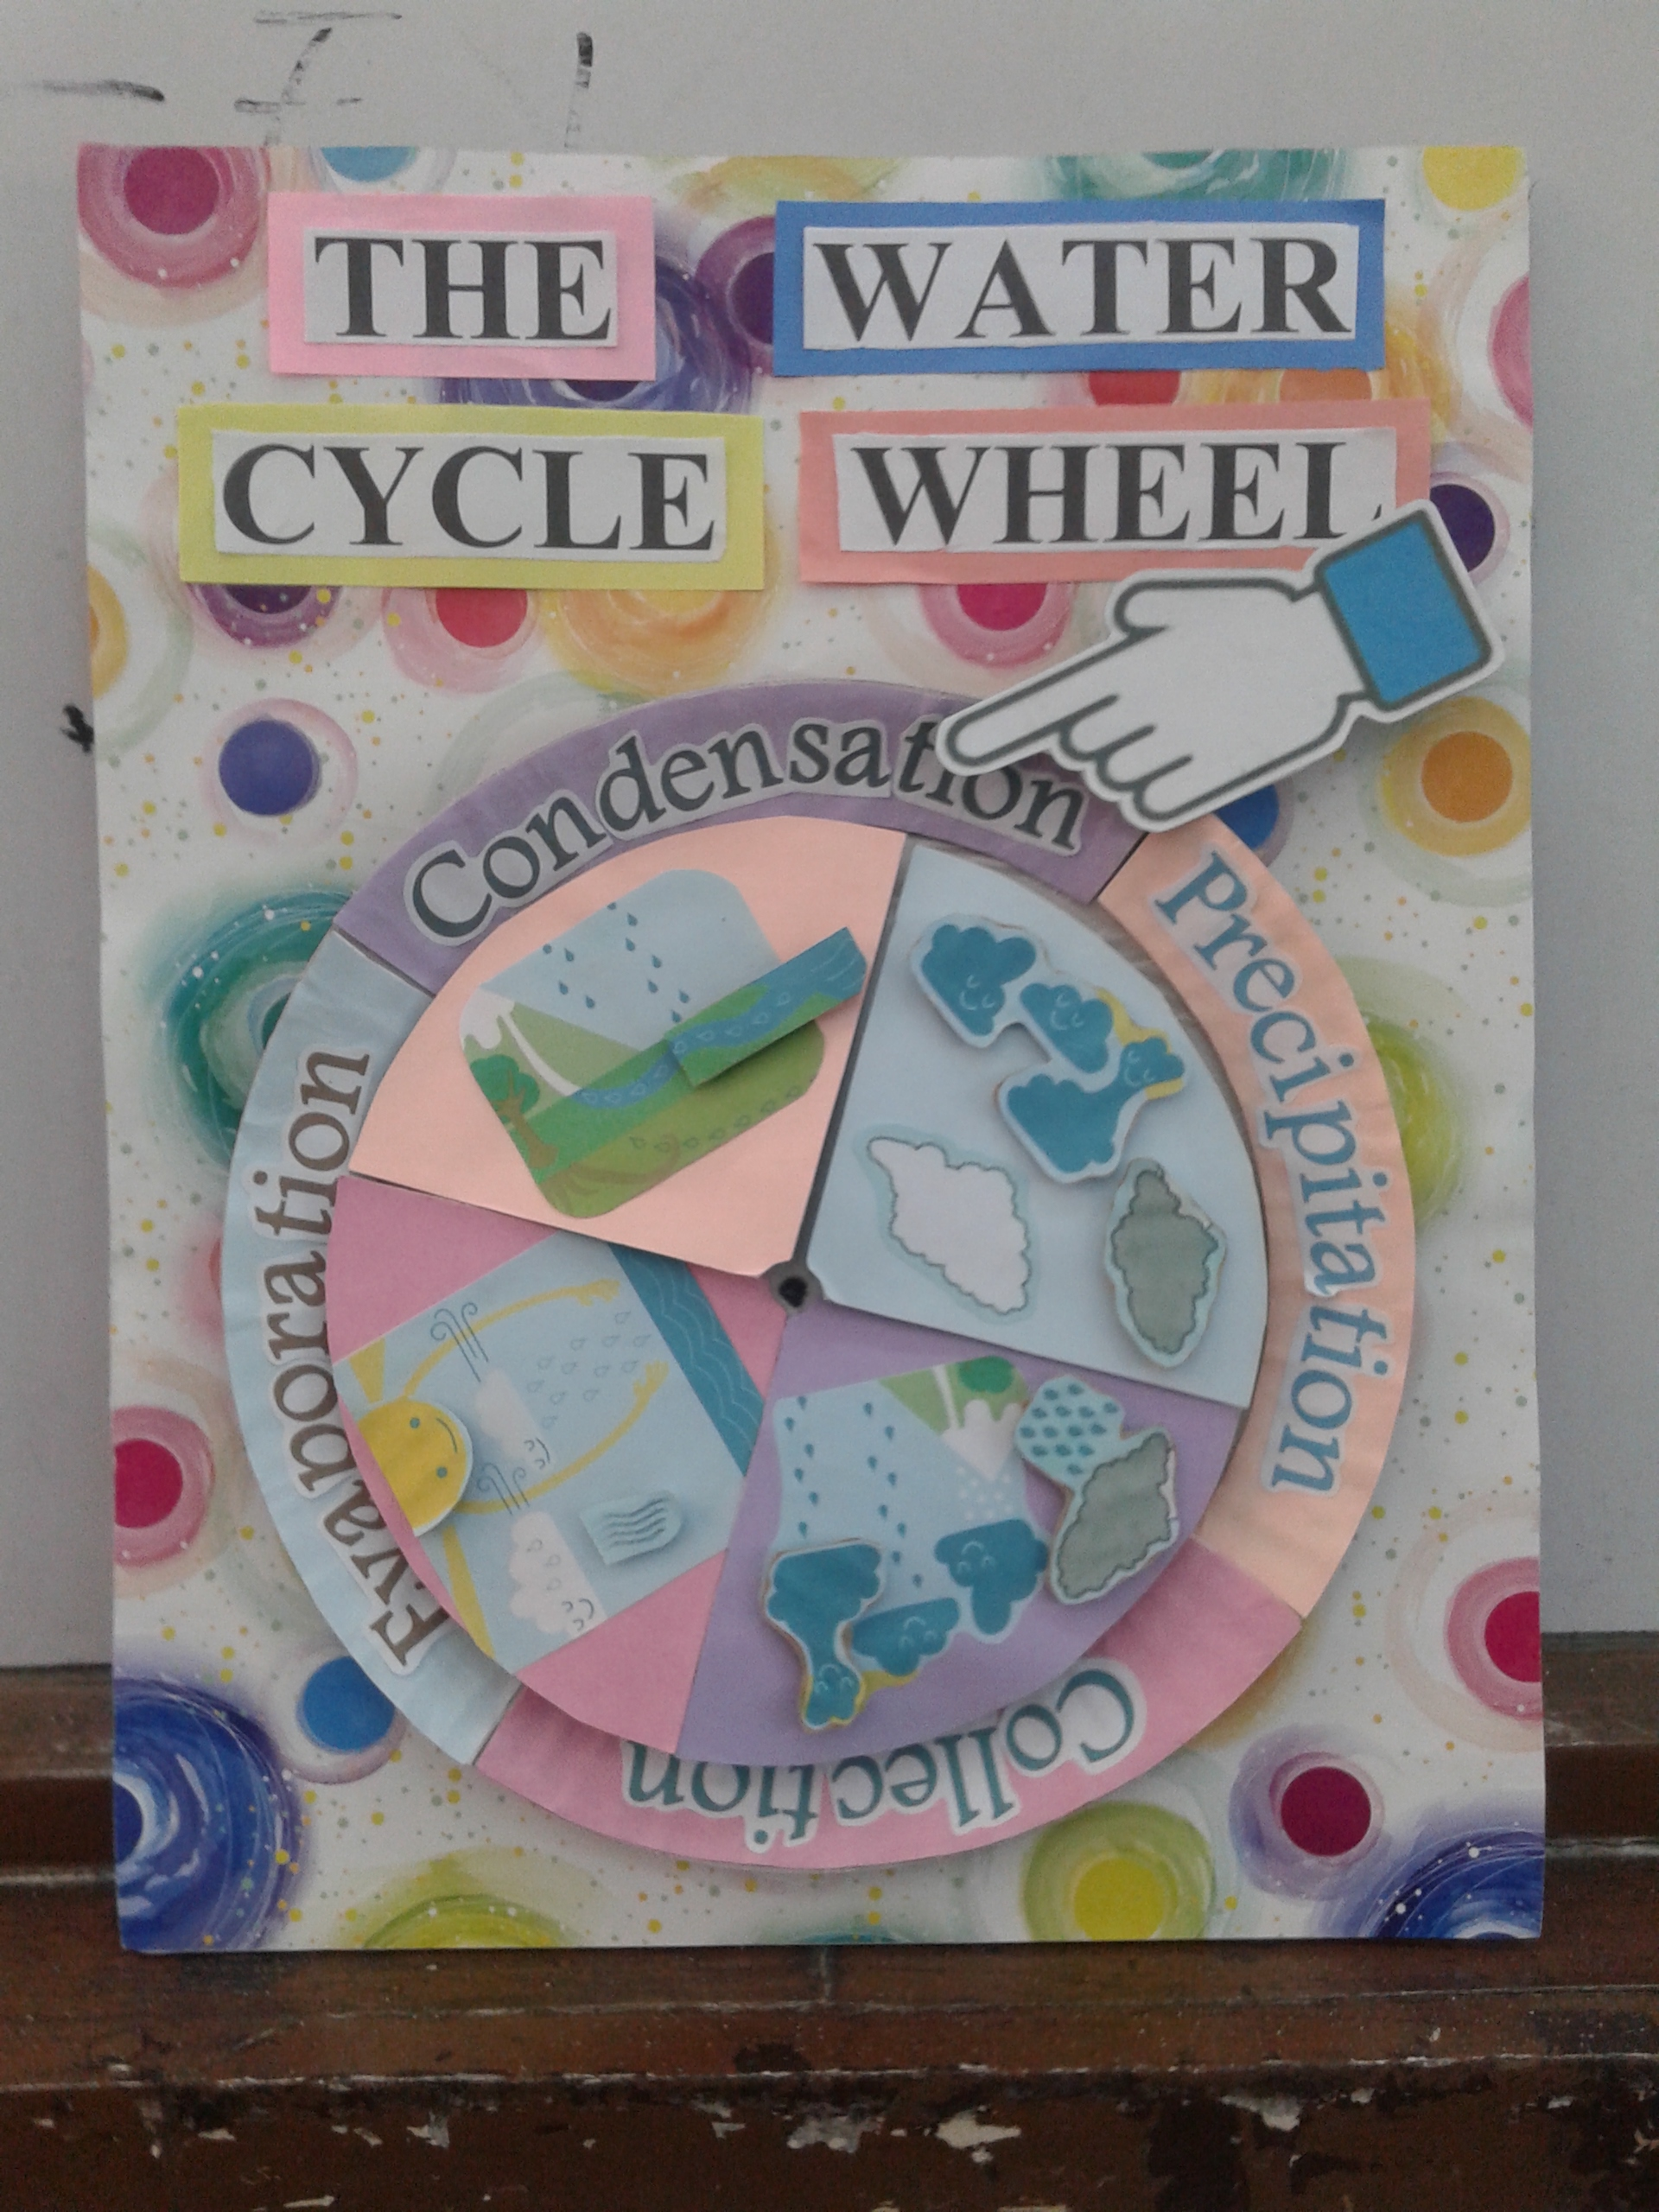 The Water Cycle Wheel